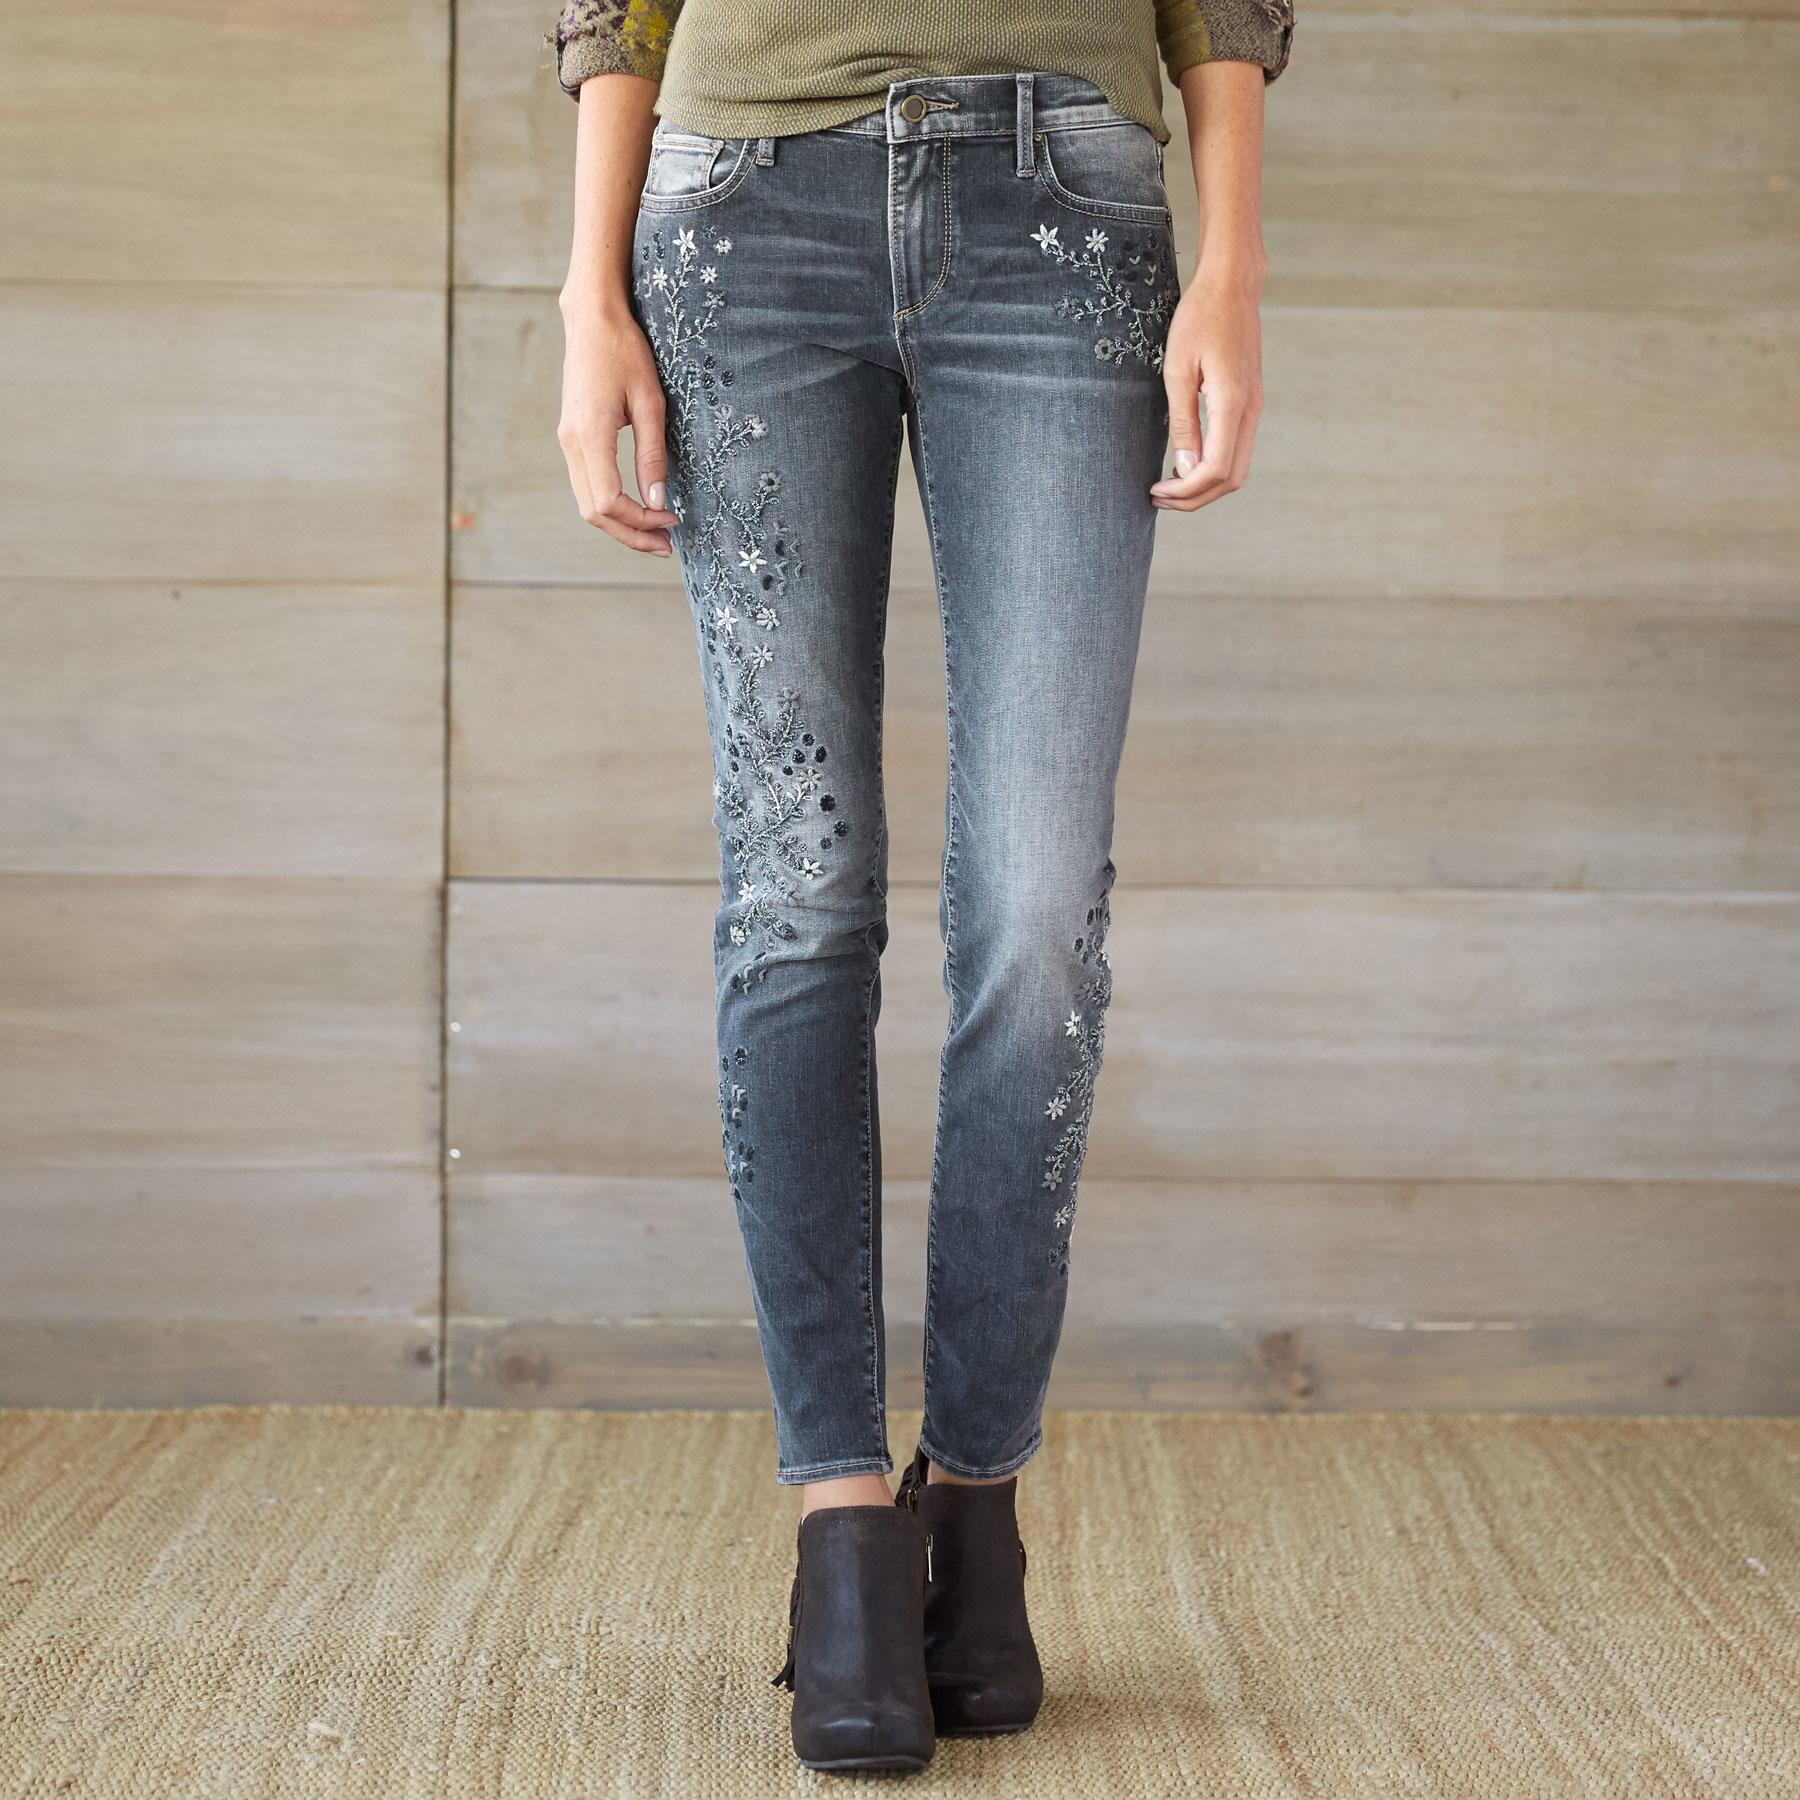 MARILYN COLDWATER CANYON JEANS BY DRIFTWOOD: View 1